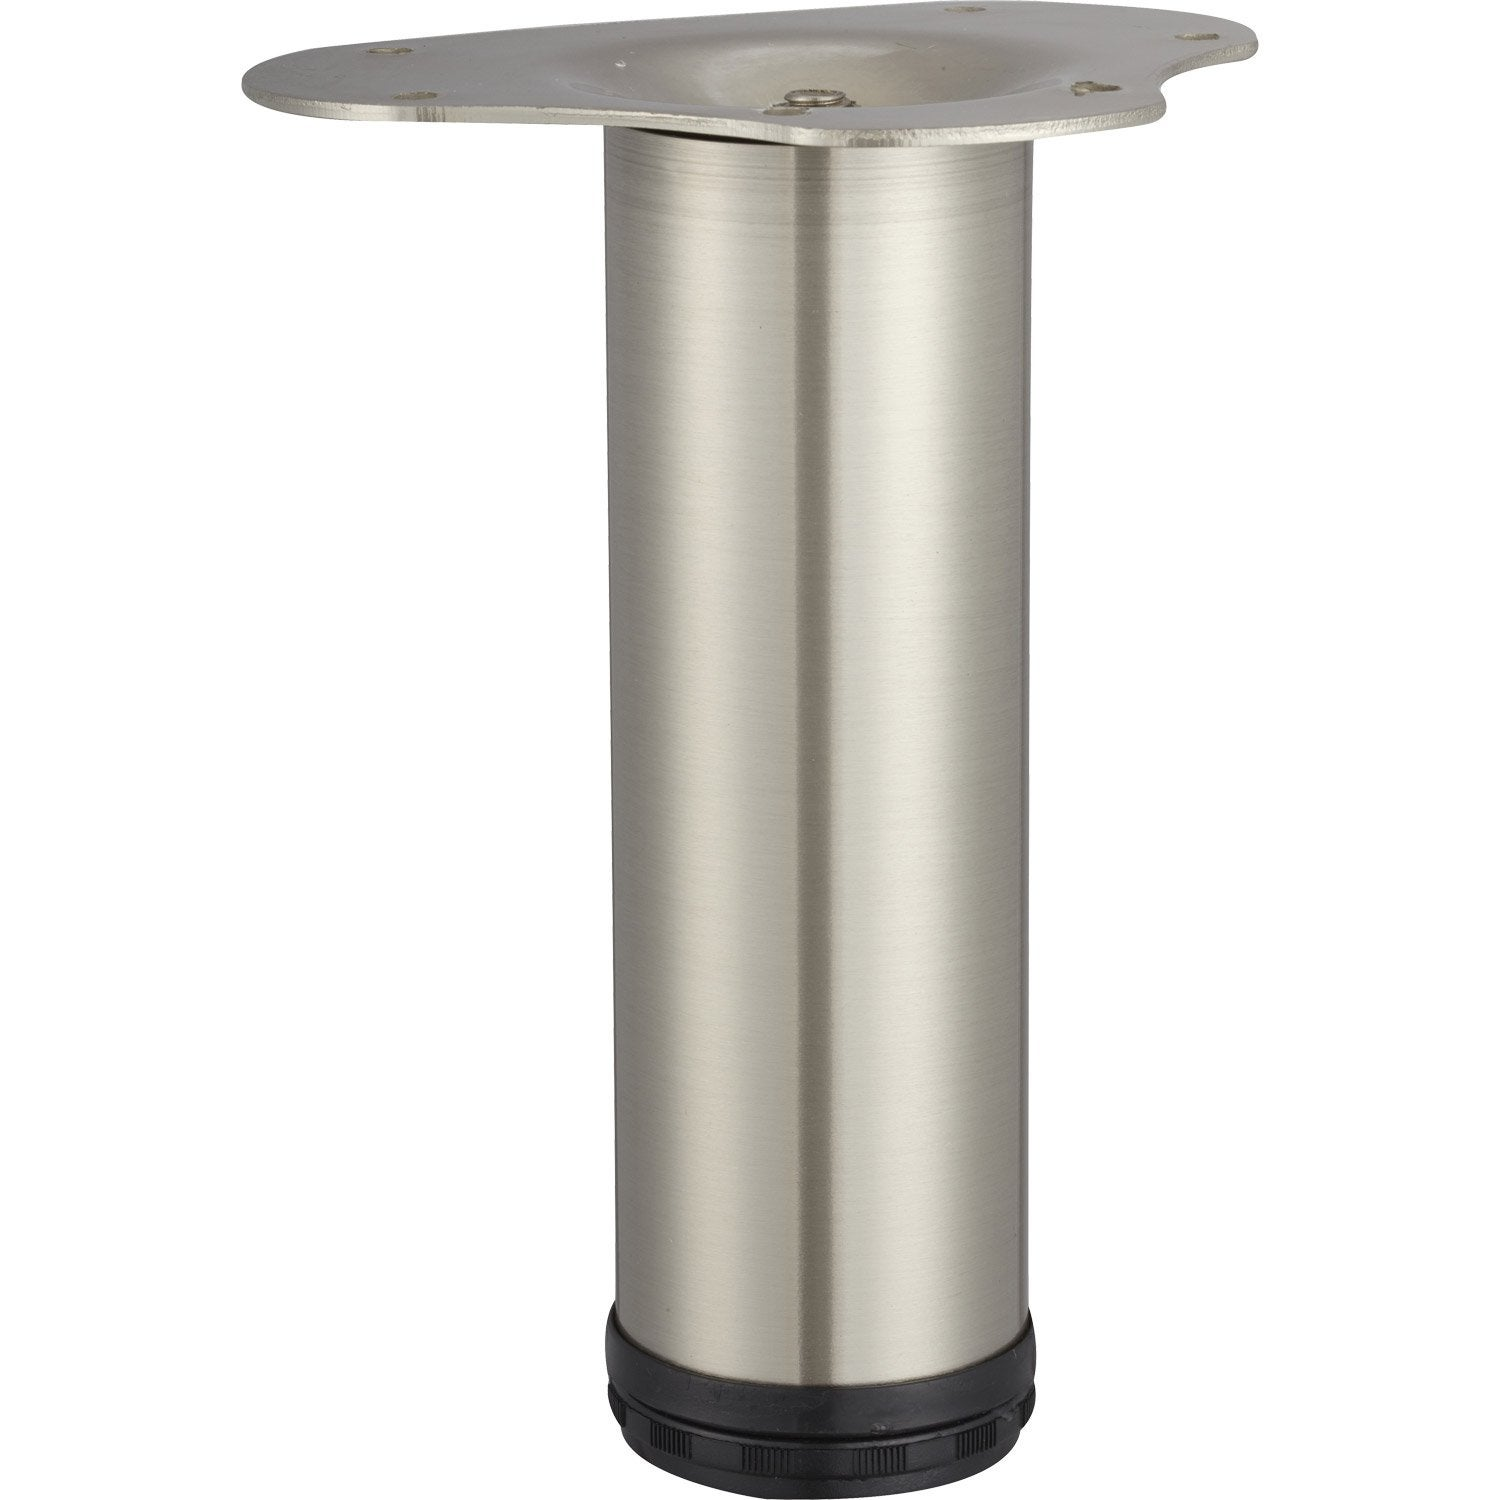 Pied de table basse cylindrique r glable acier bross gris de 20 23 cm leroy merlin - Ikea pied de table ...